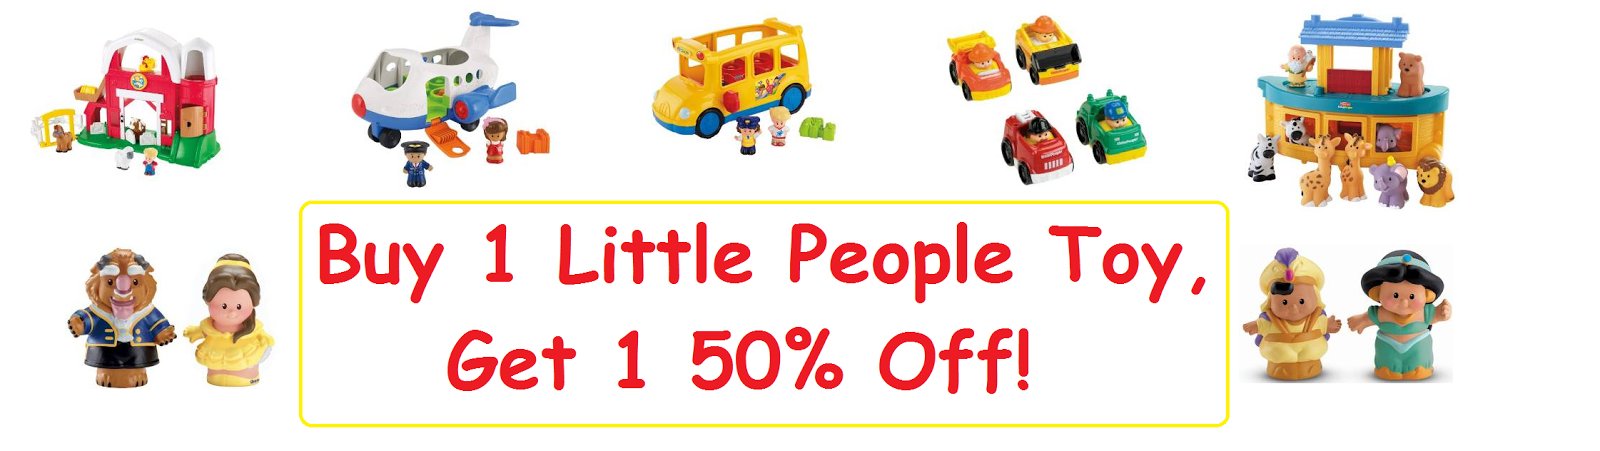 Buy 1 Get 1 50% Off Promo on Fisher Price Little People Toys!